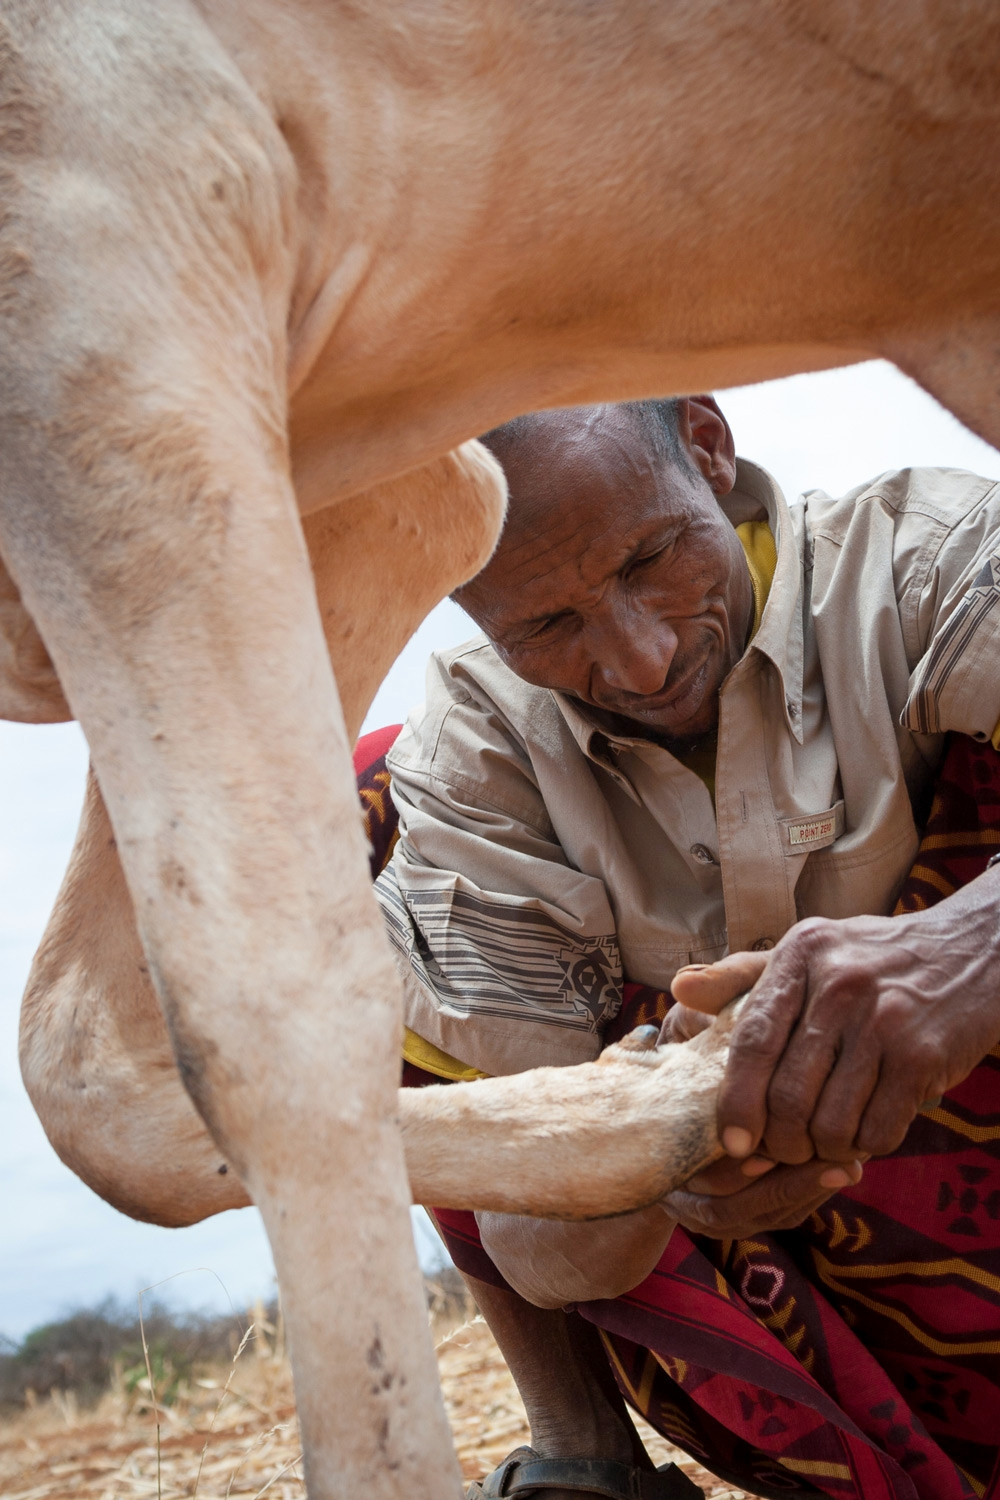 ethiopia-pastoralist-cattle-vet-animal-health-worker.jpg